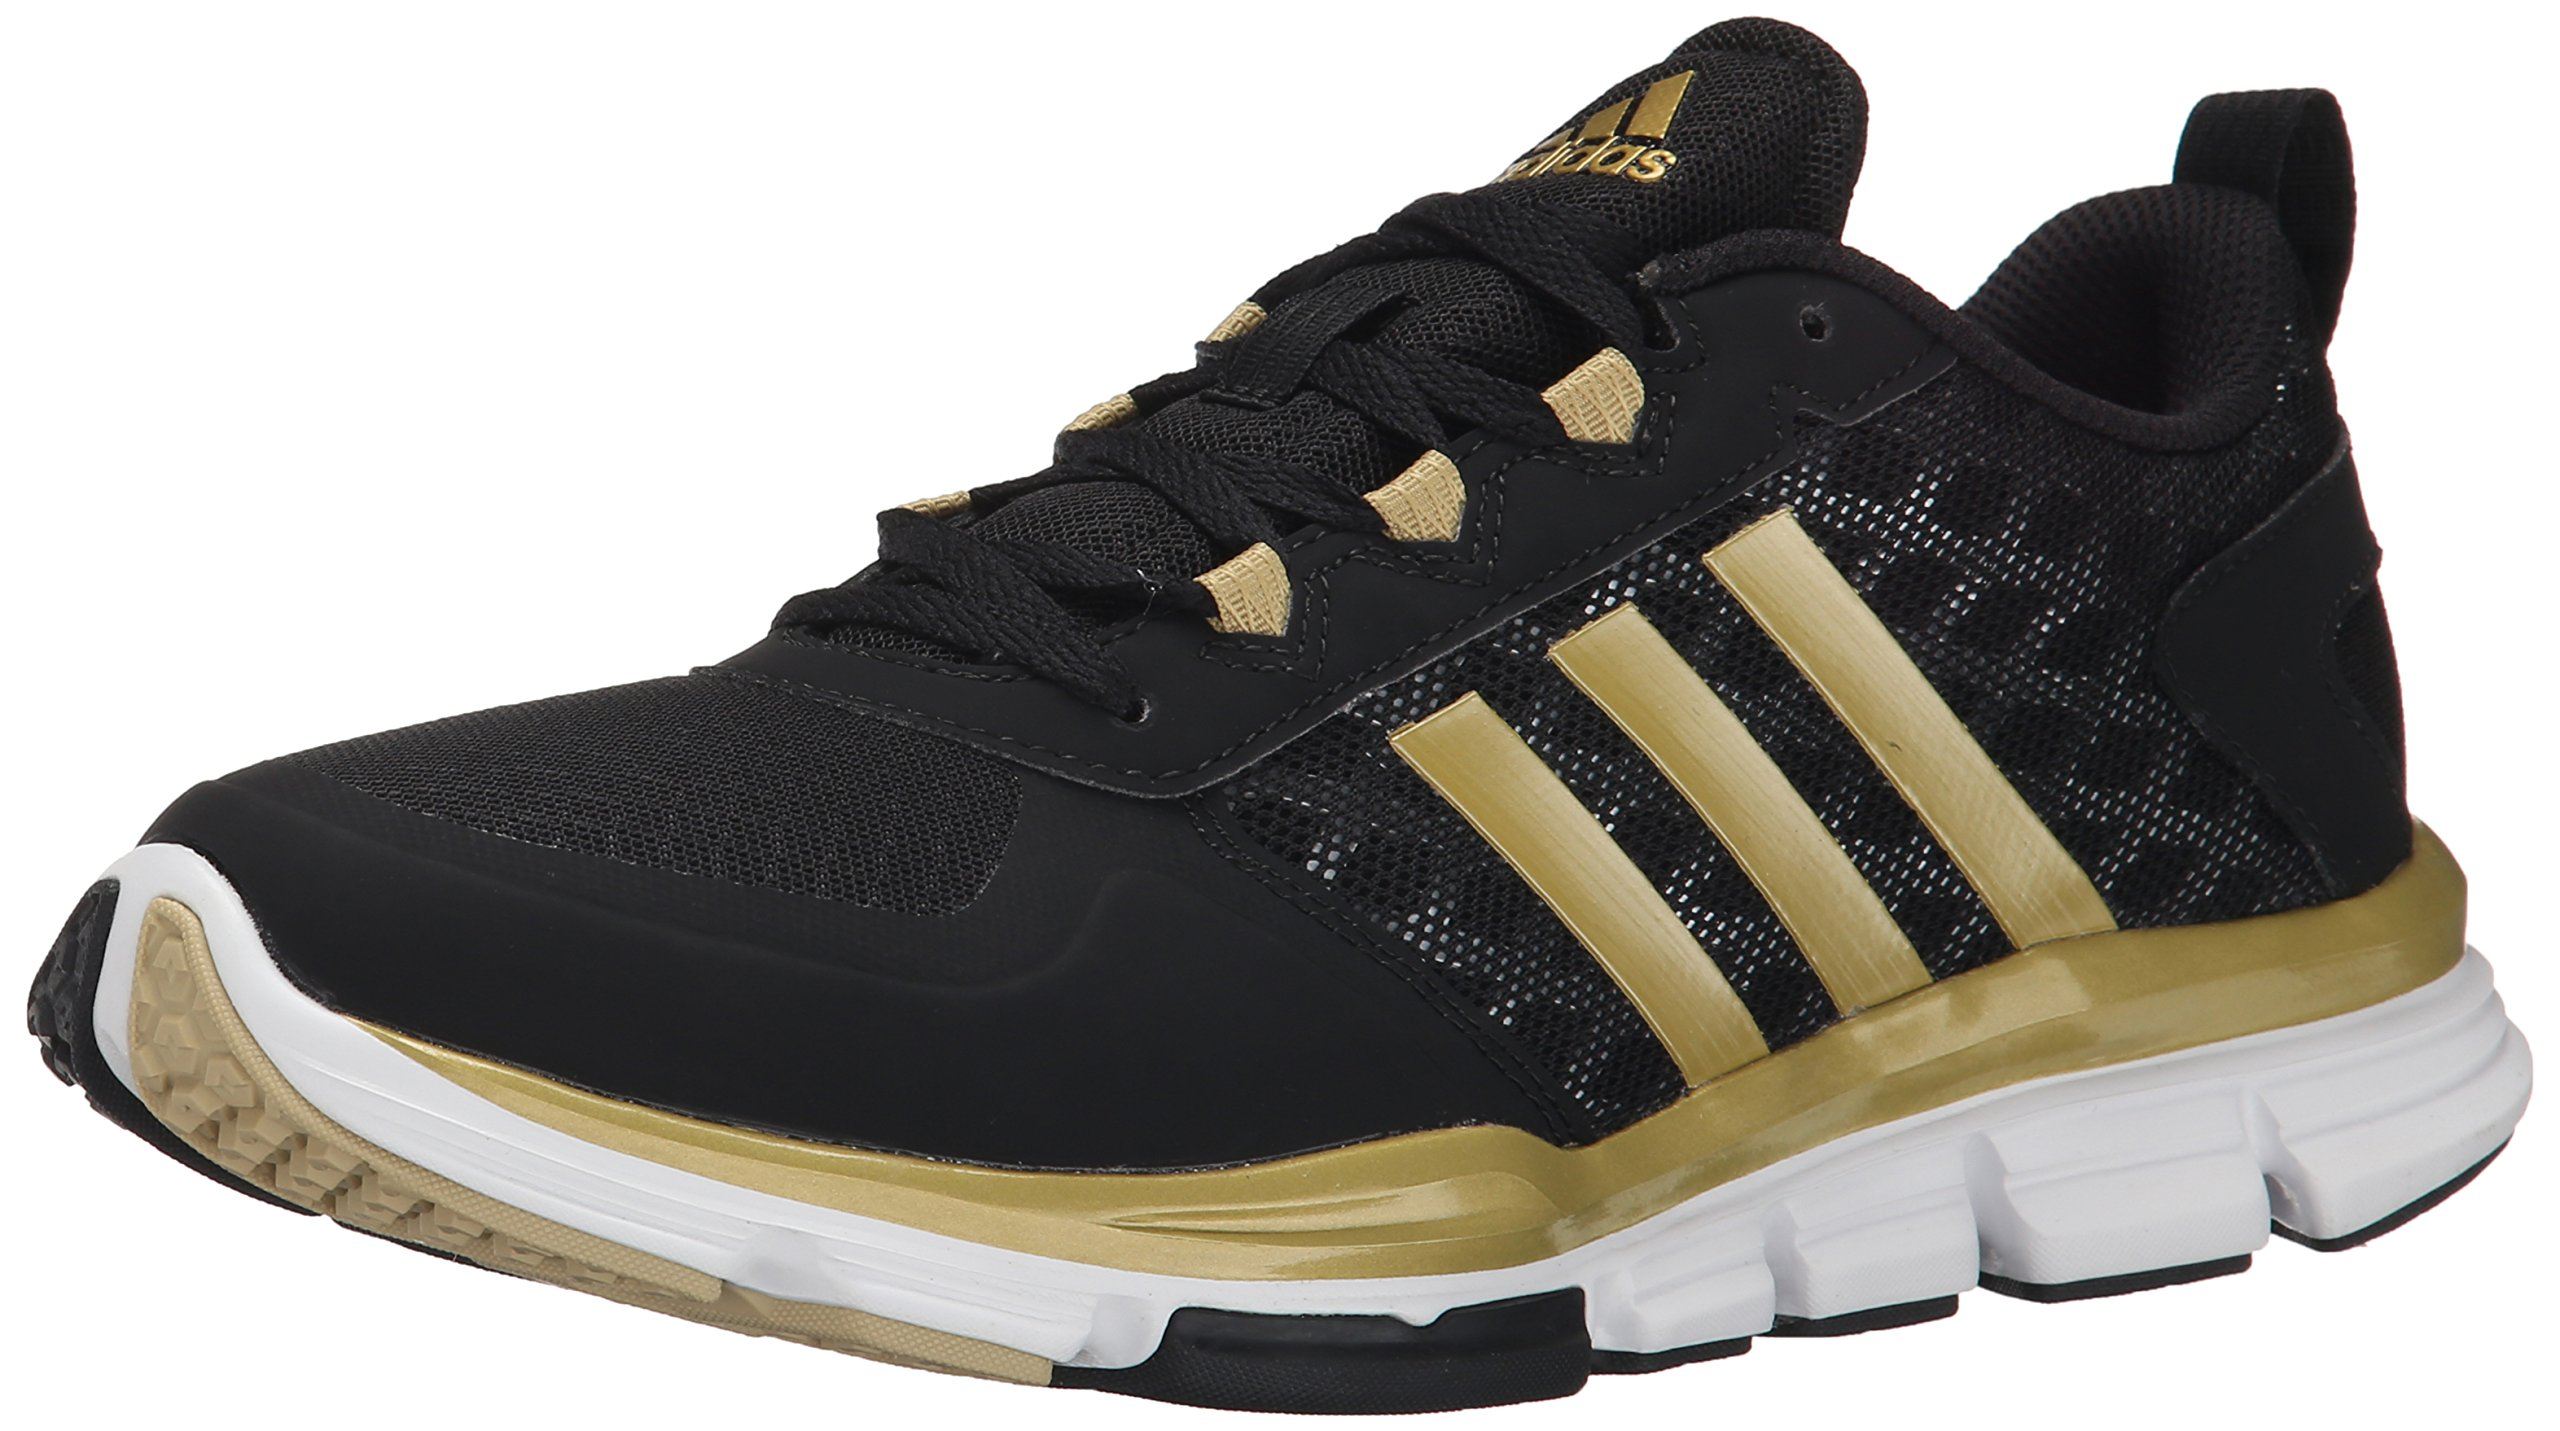 Galleon - Adidas Performance Men s Speed Trainer 2 Training Shoe ... 09fbf60c6